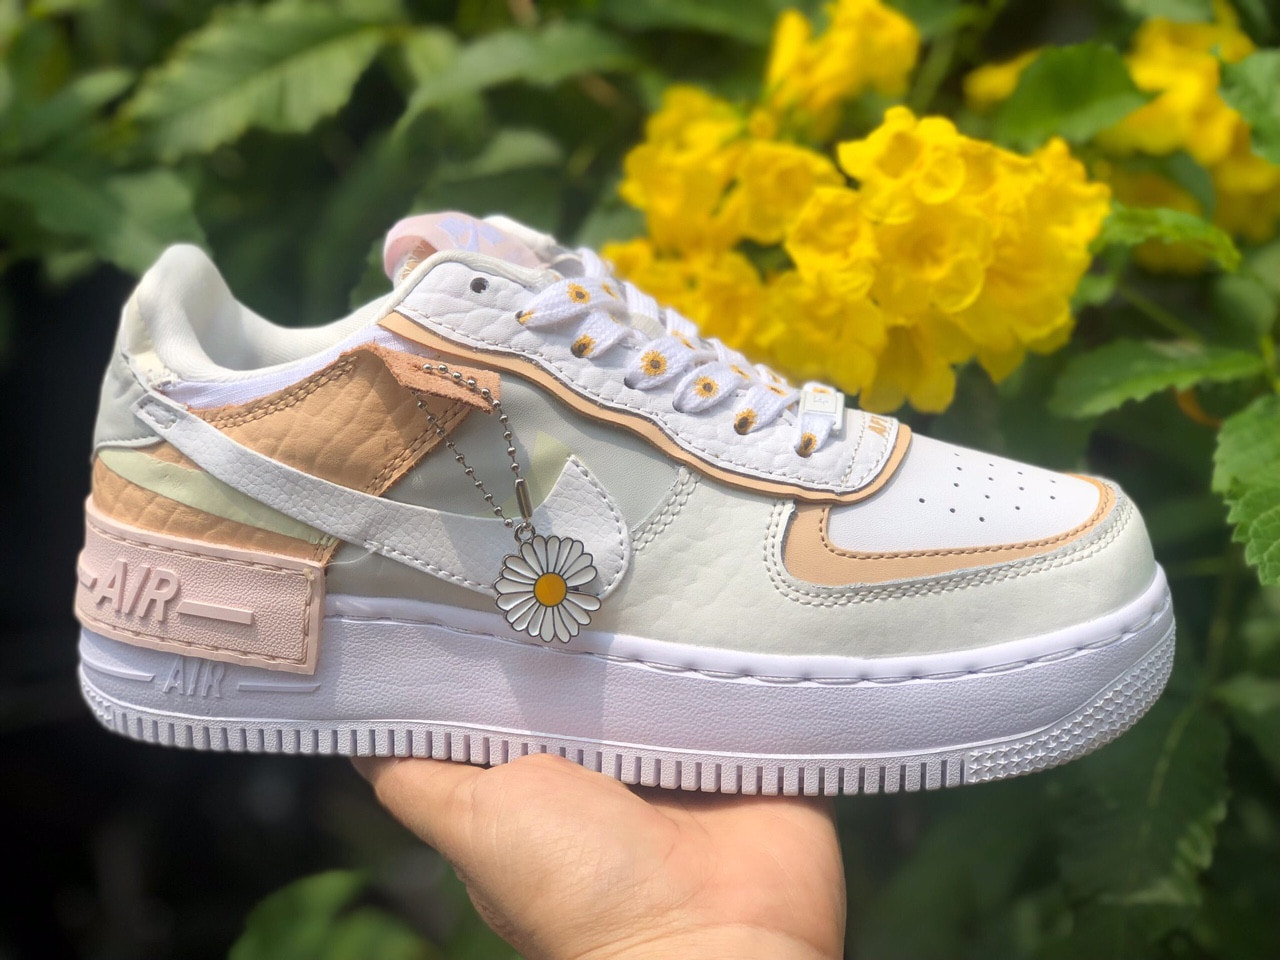 giày thể thao nike air force 1 shadow se